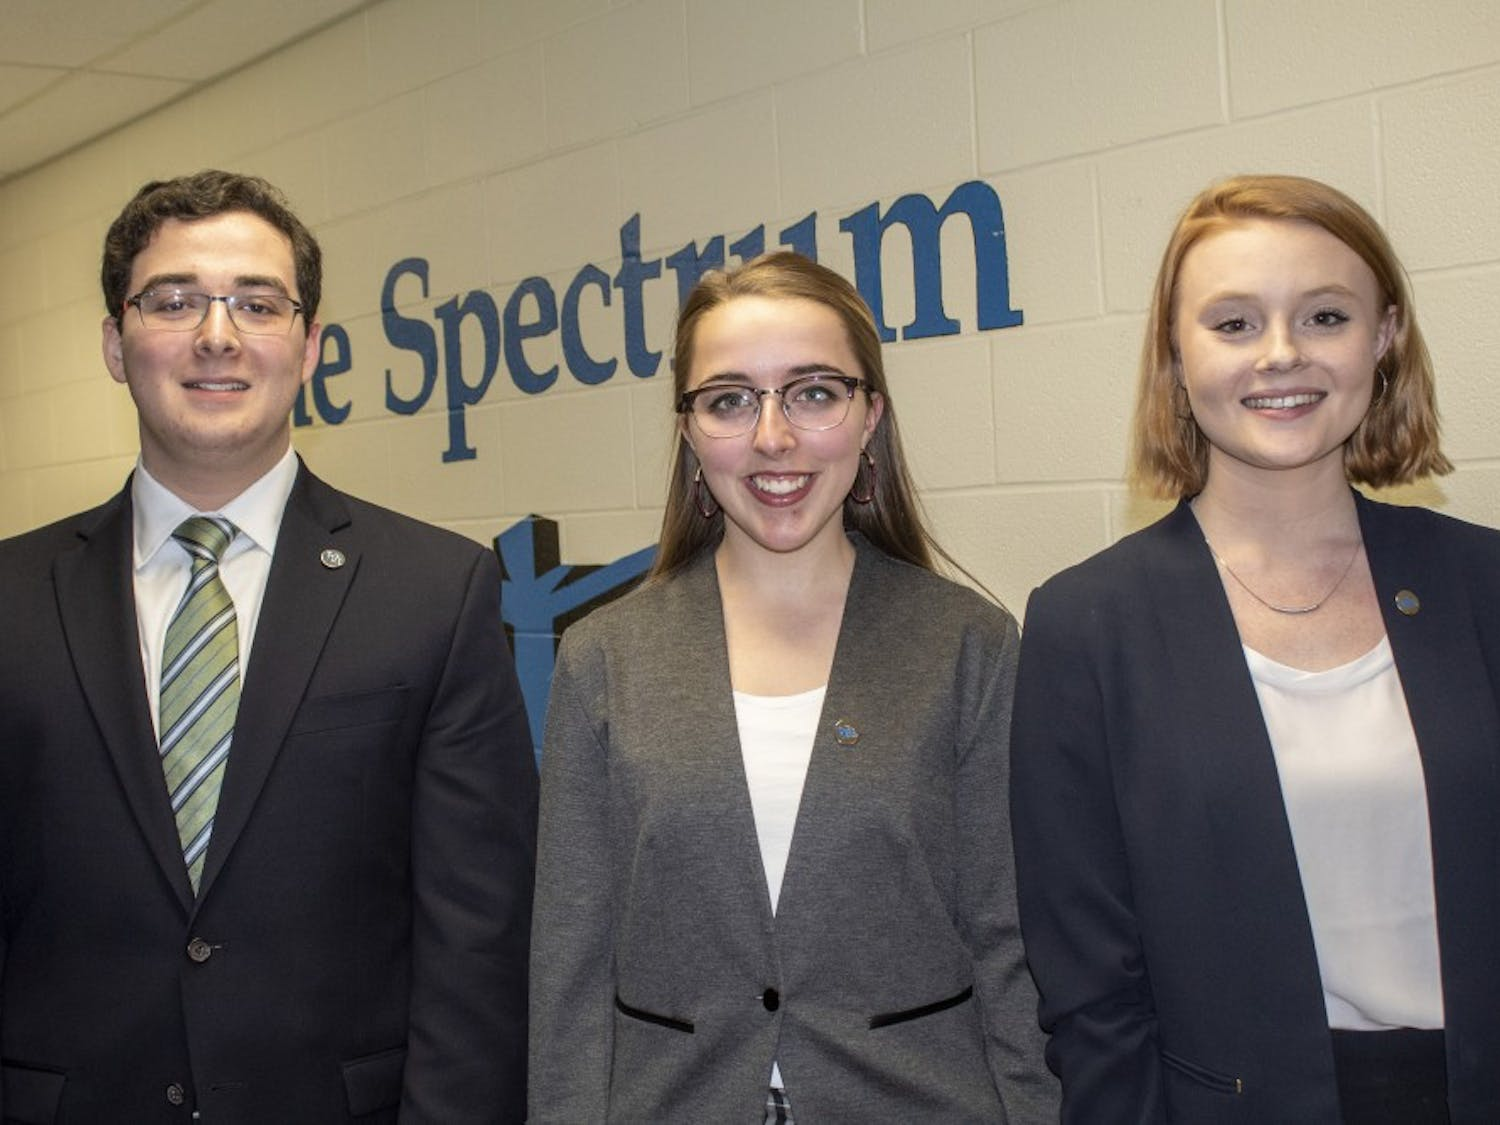 Members of the CLEAR party from left to right: Eric Weinman, Sadie Kratt, Abbygail Hoke.